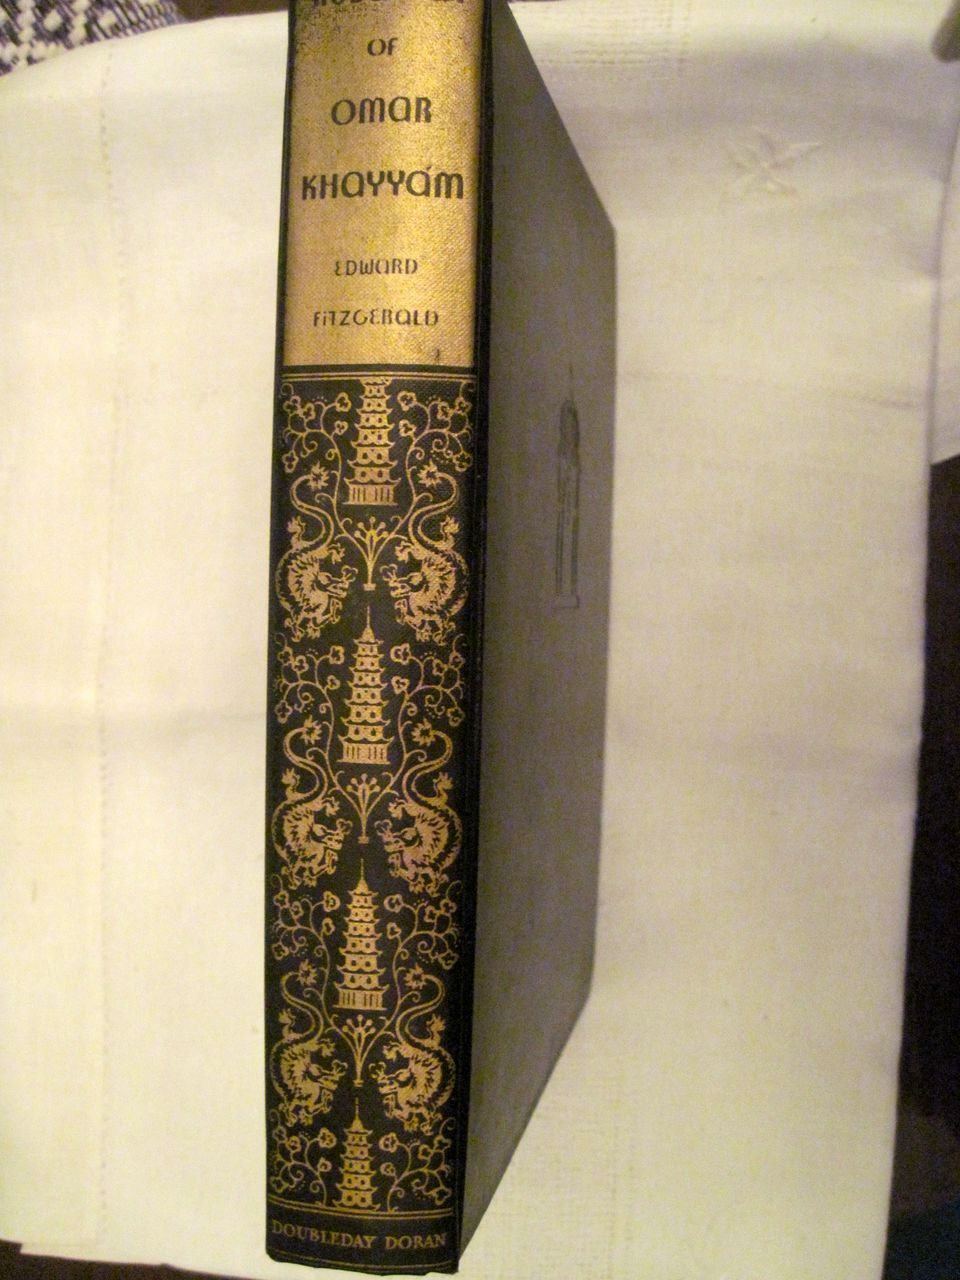 Rubaiyat of Omar Khayyam, Illustrated by Edmund Dulac, 1934, Dust jacket